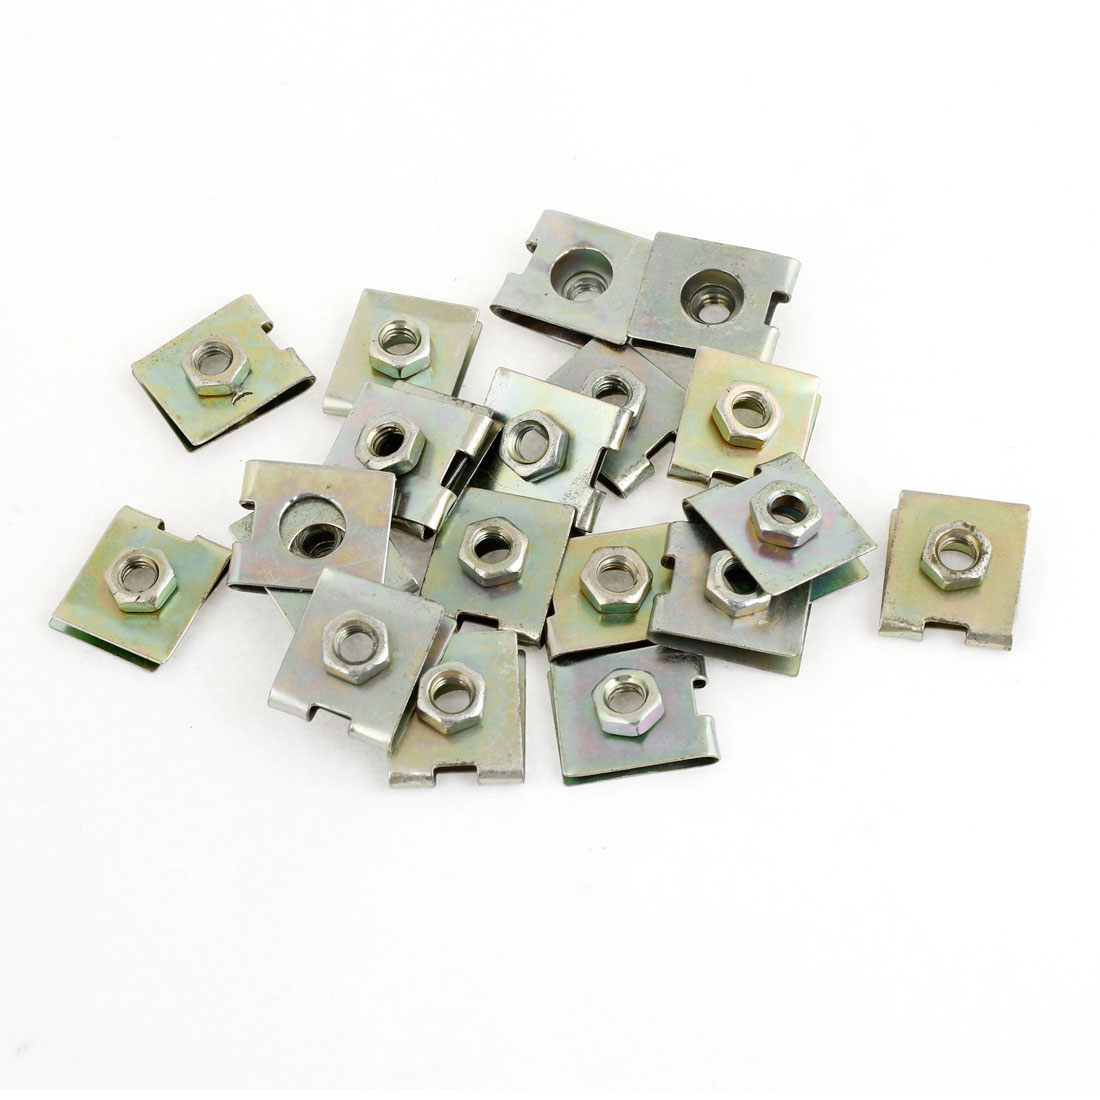 20pcs Spring Metal Plate U-Type Clips Speed Nuts M6 for Car Panel Fender